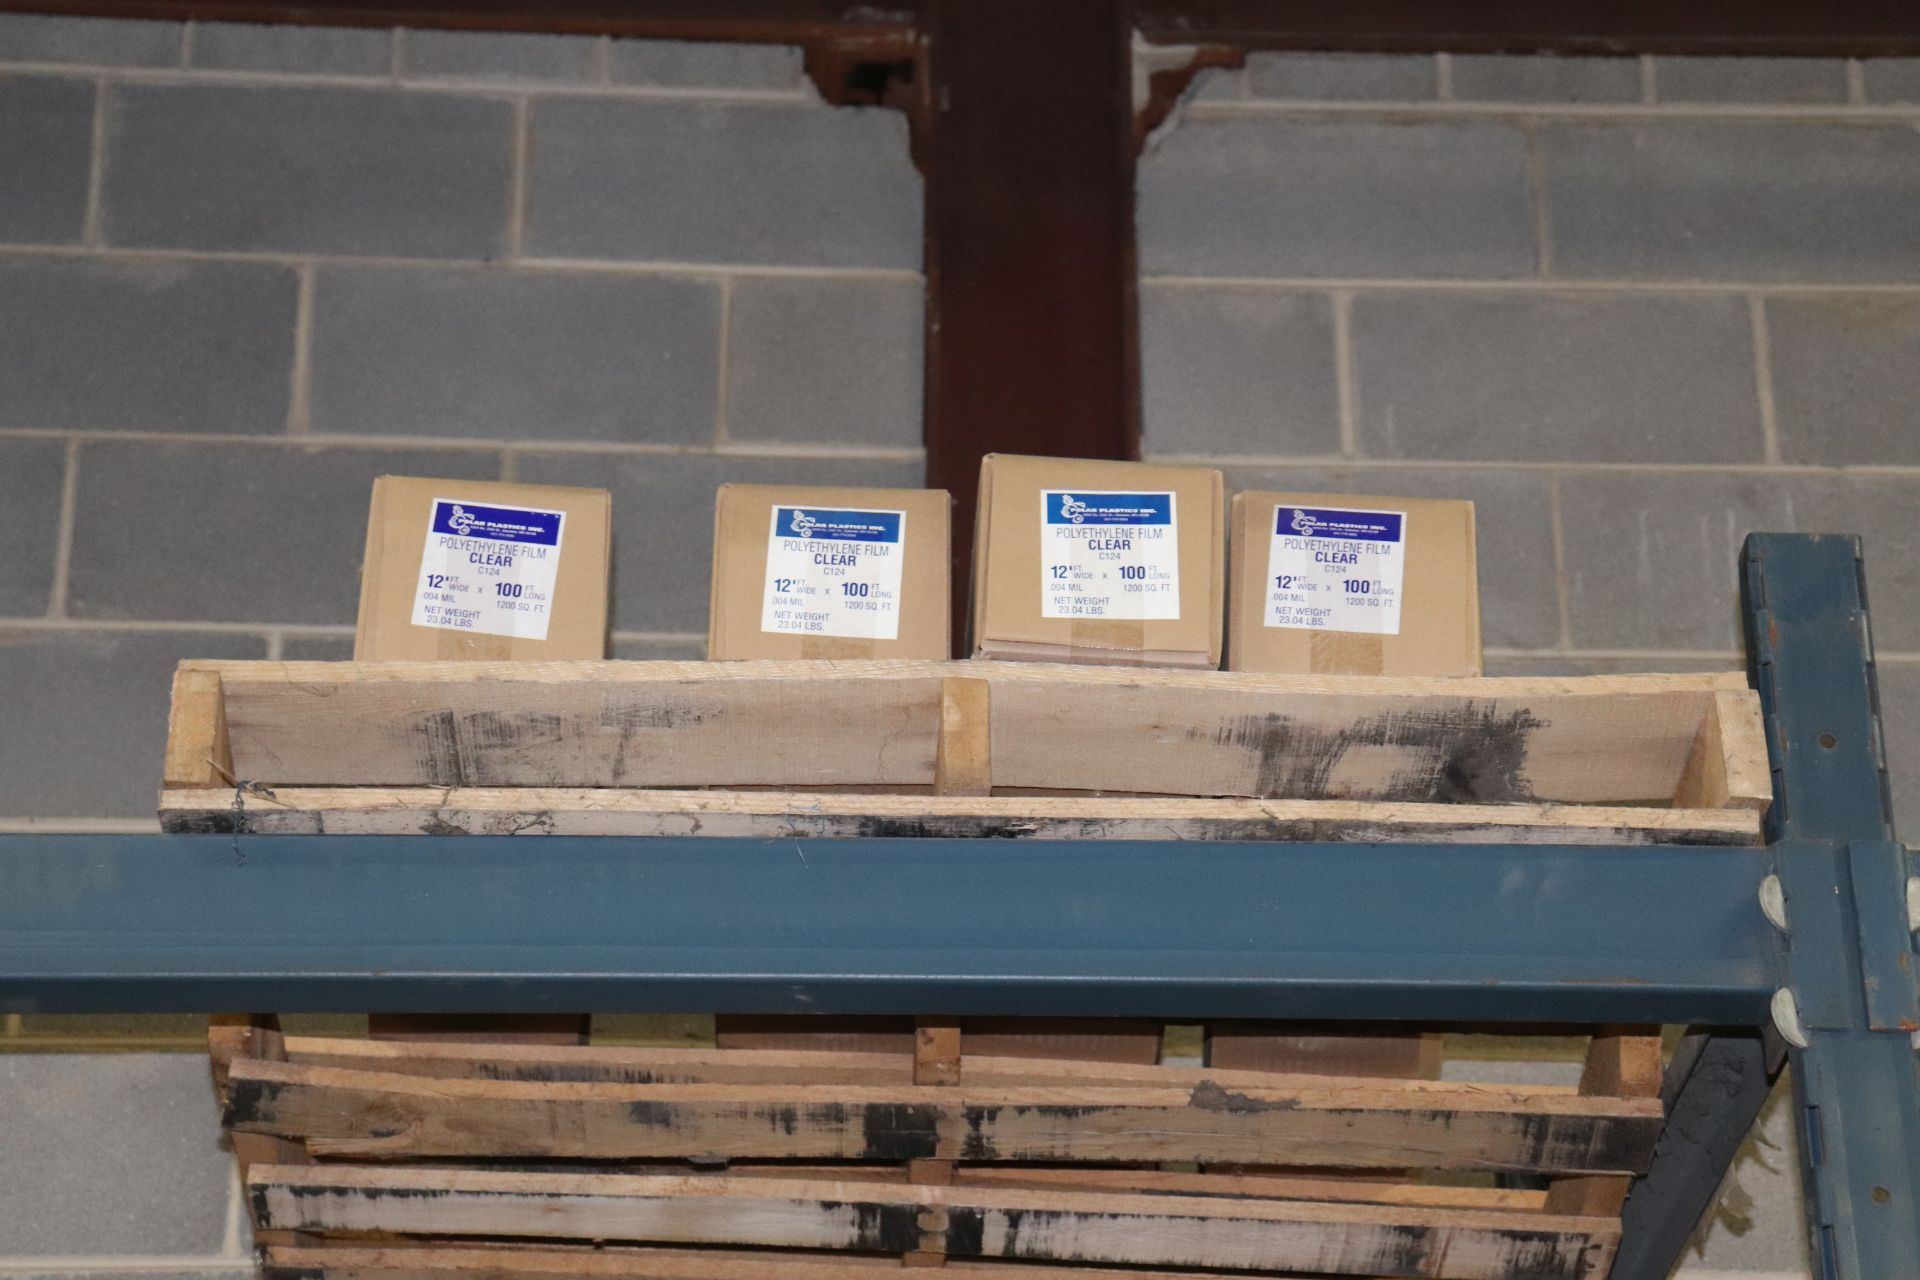 Lot 453 - Four boxes of polyurethane film, clear, 12' x 100'